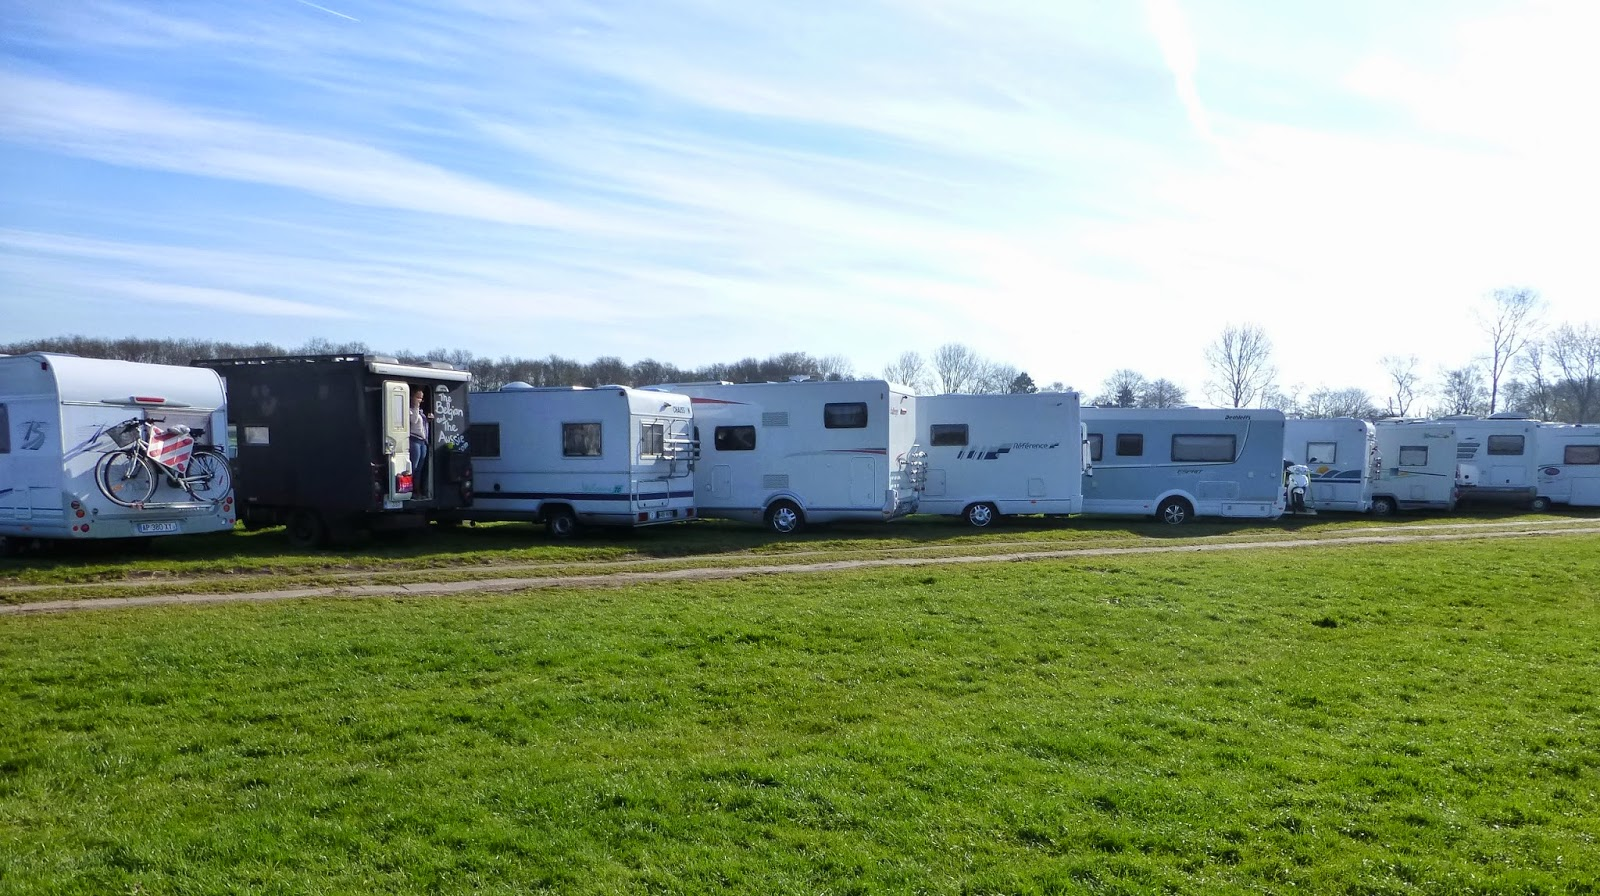 On a recent trip to Holland we parked almongst the other motorhomes at Keukenhof Gardens, and realised that we might be the black sheep of the European Motorhomes.Our Blac doesn't look like other European Motorhomes! (Keukenhof Gardens).